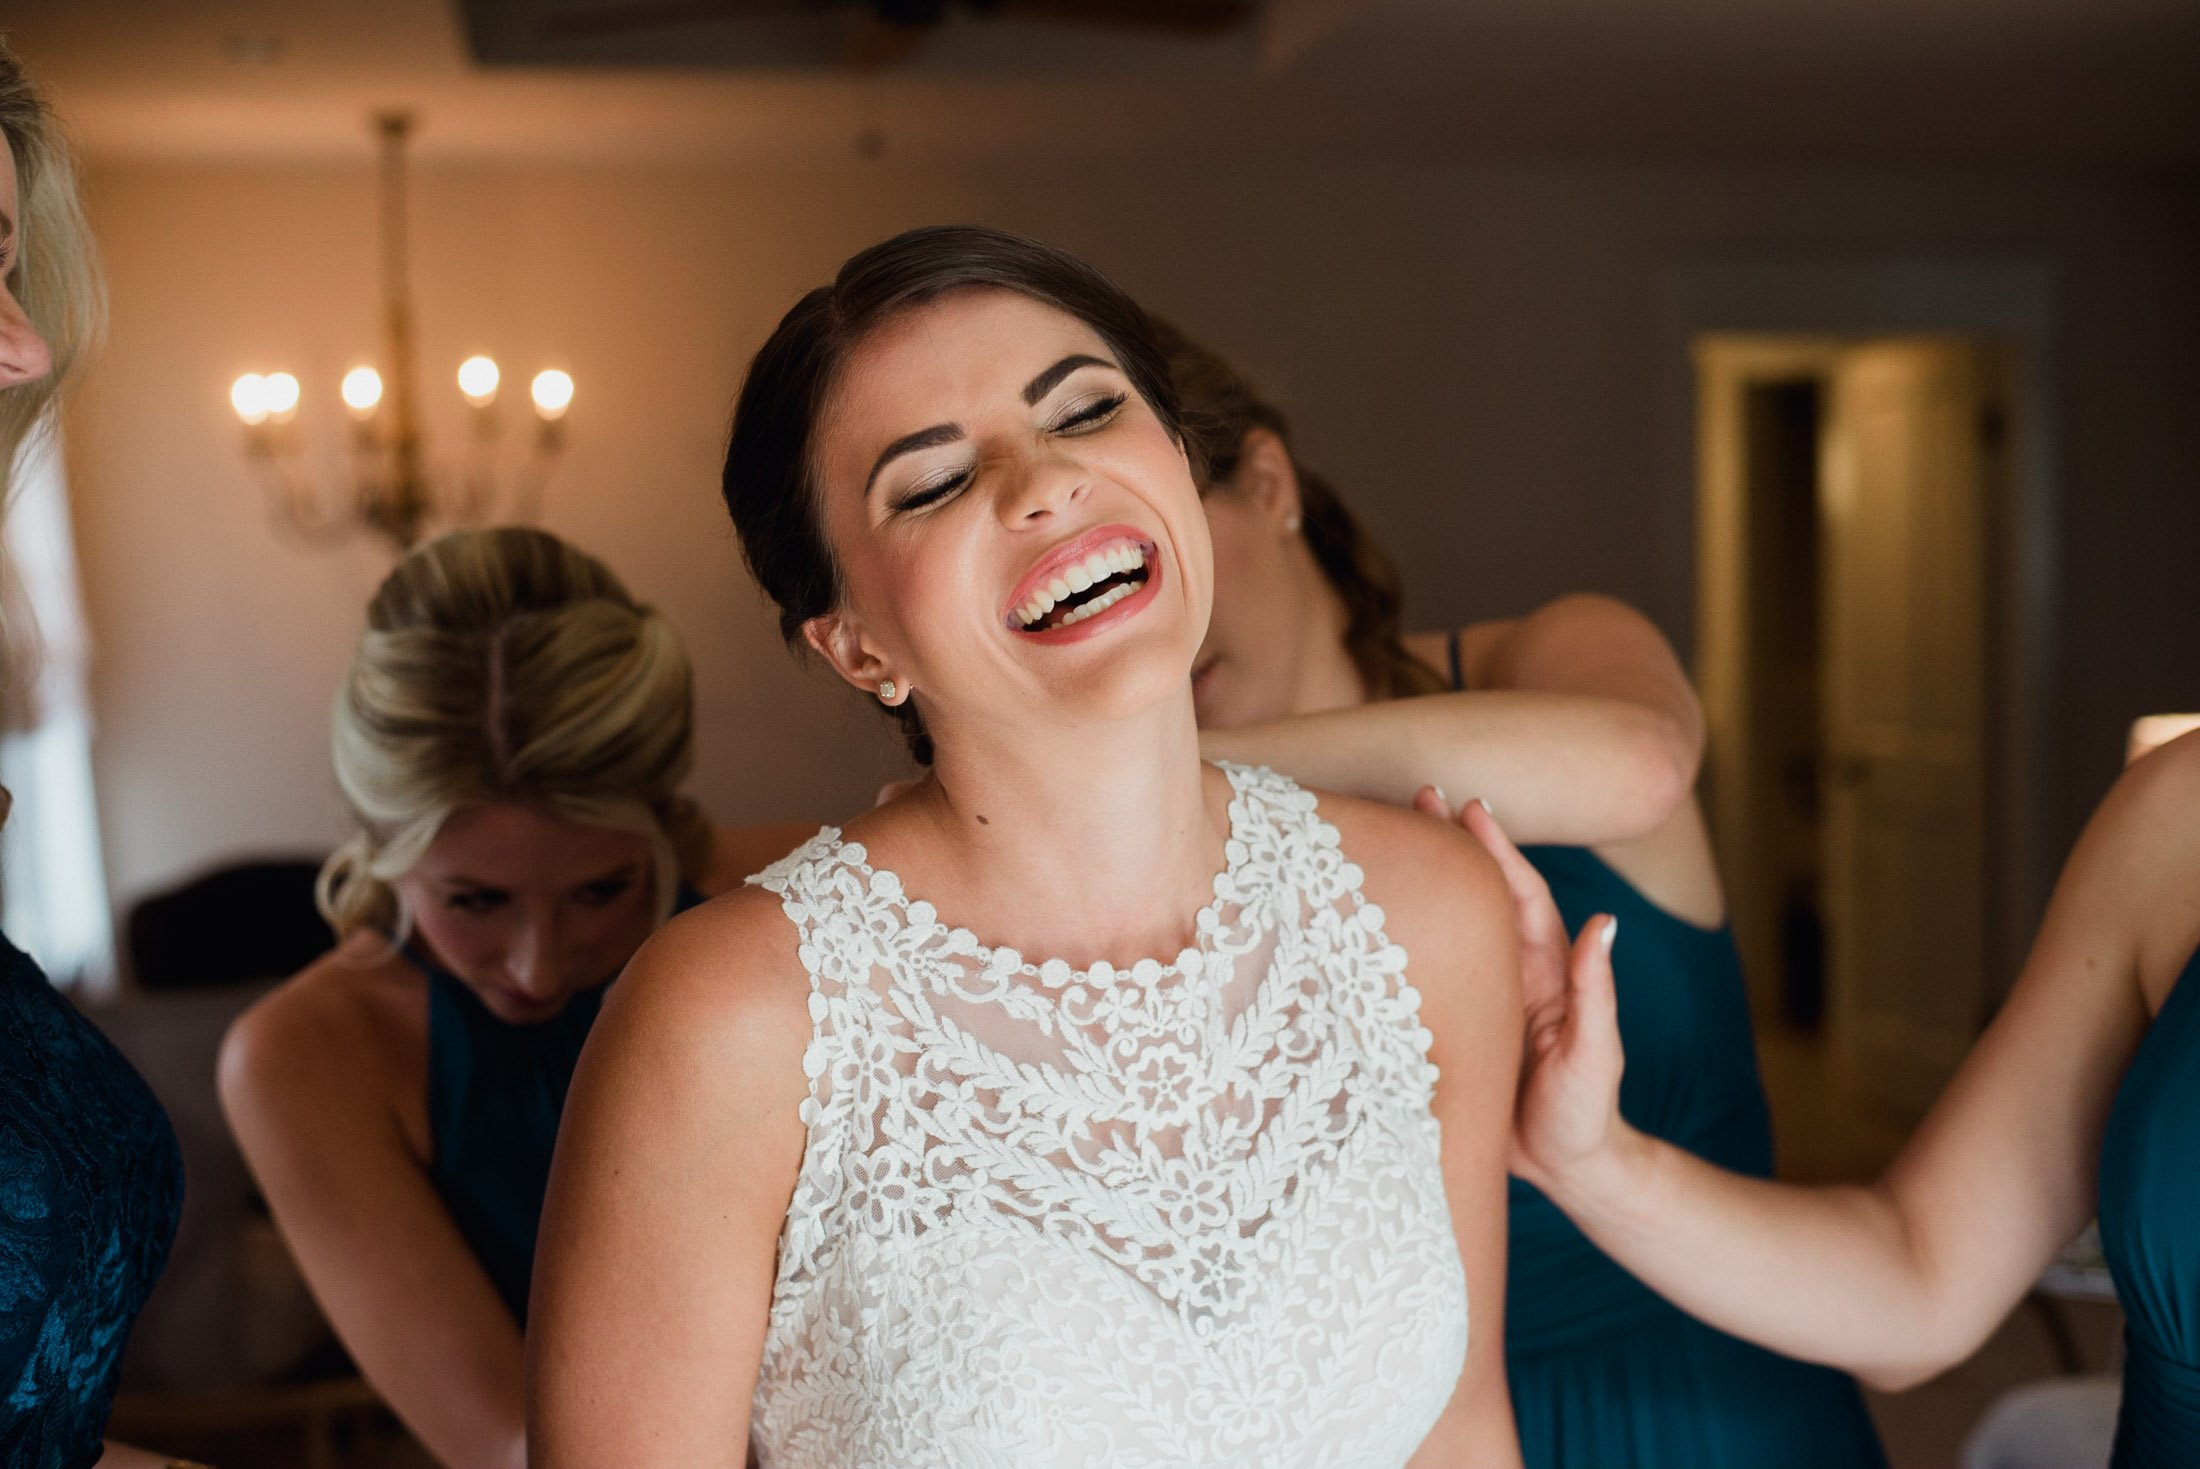 bride laughing while her bridesmaids get her dressed, natural light photography, bridal suite photos at greenhouse at driftwood, natural, candid wedding photographer in austin texas